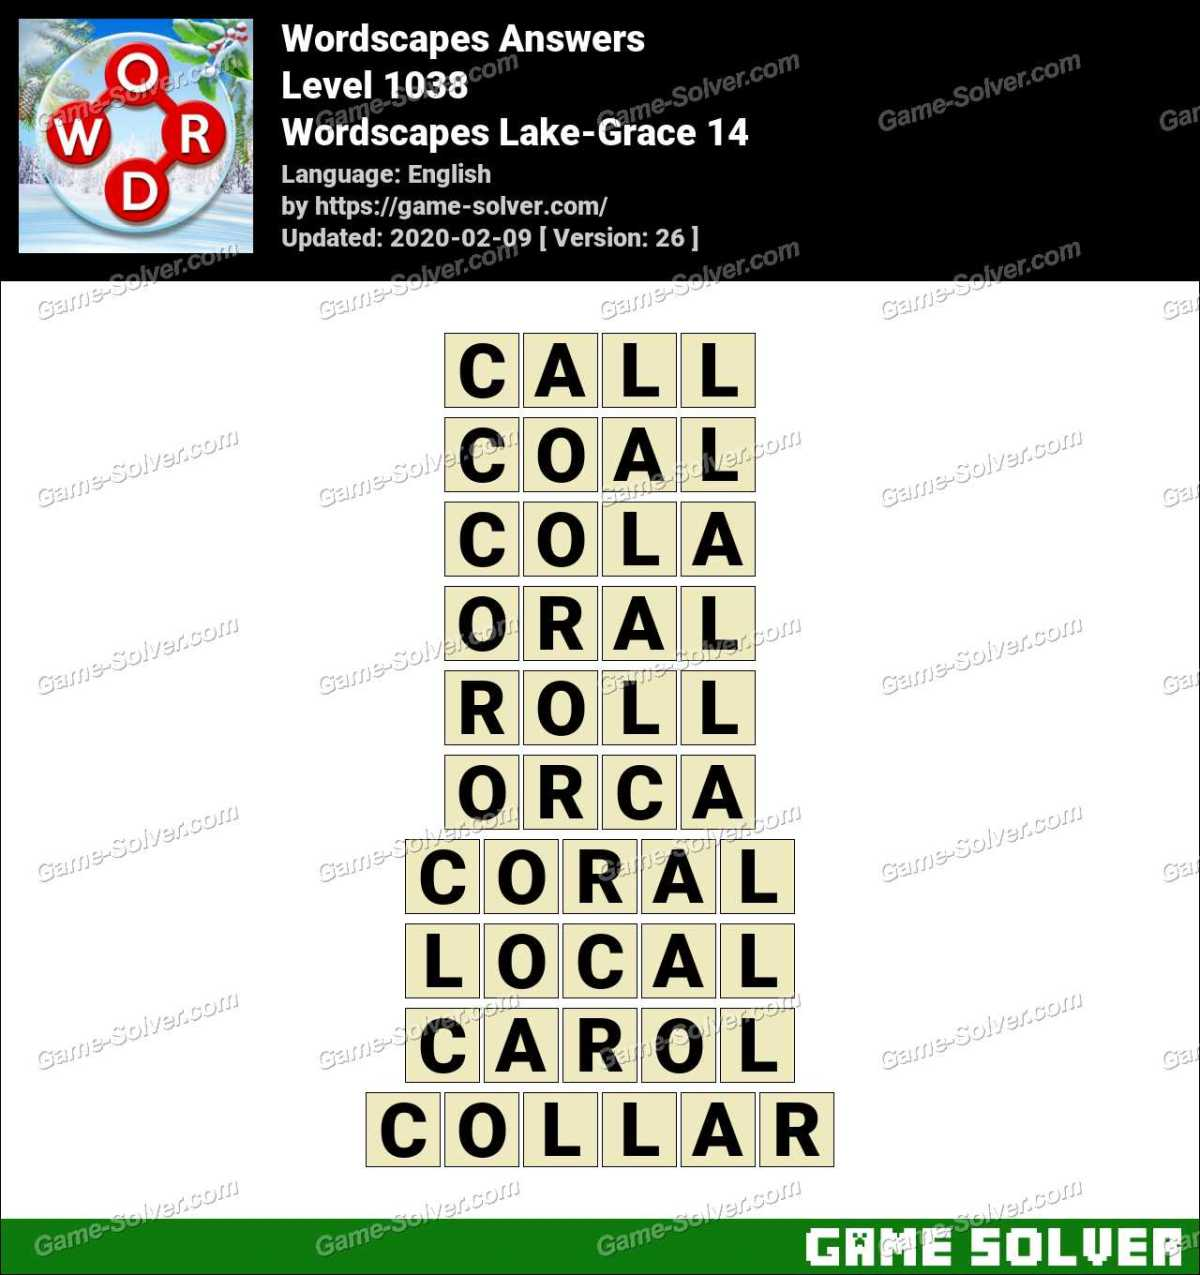 Wordscapes Lake-Grace 14 Answers